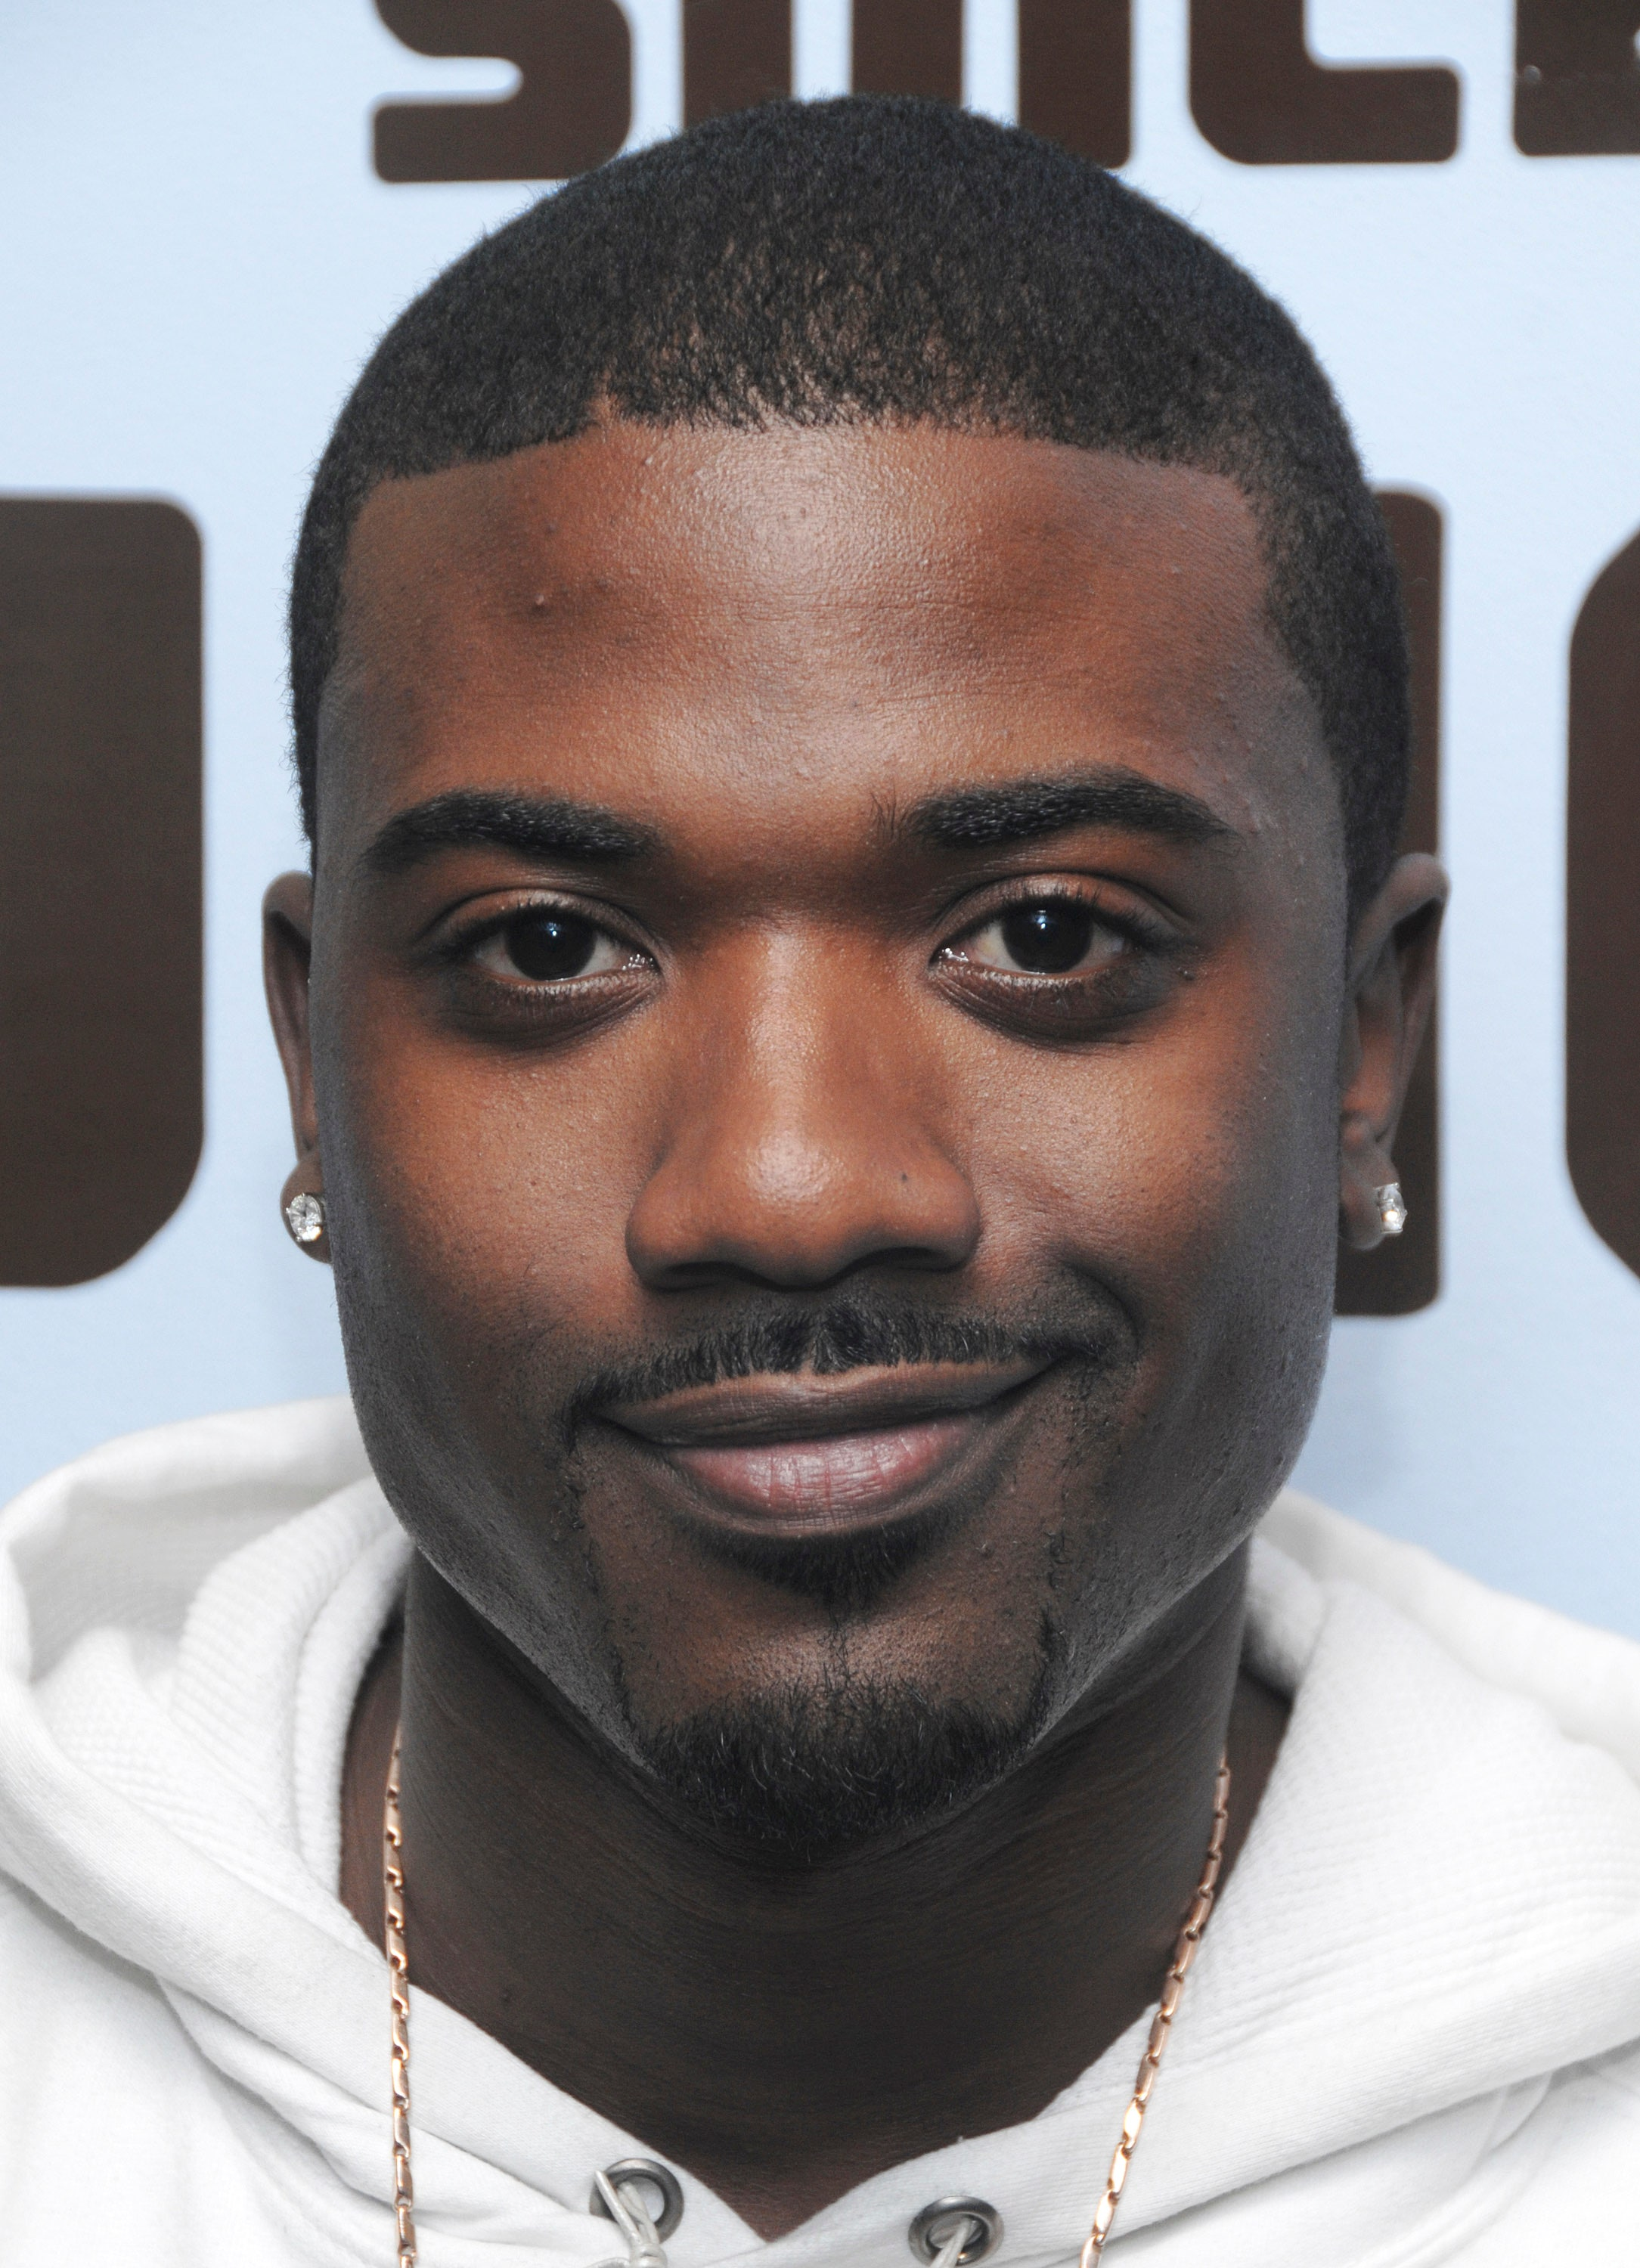 Singer Ray J arrested for unruly behavior and spitting on ...